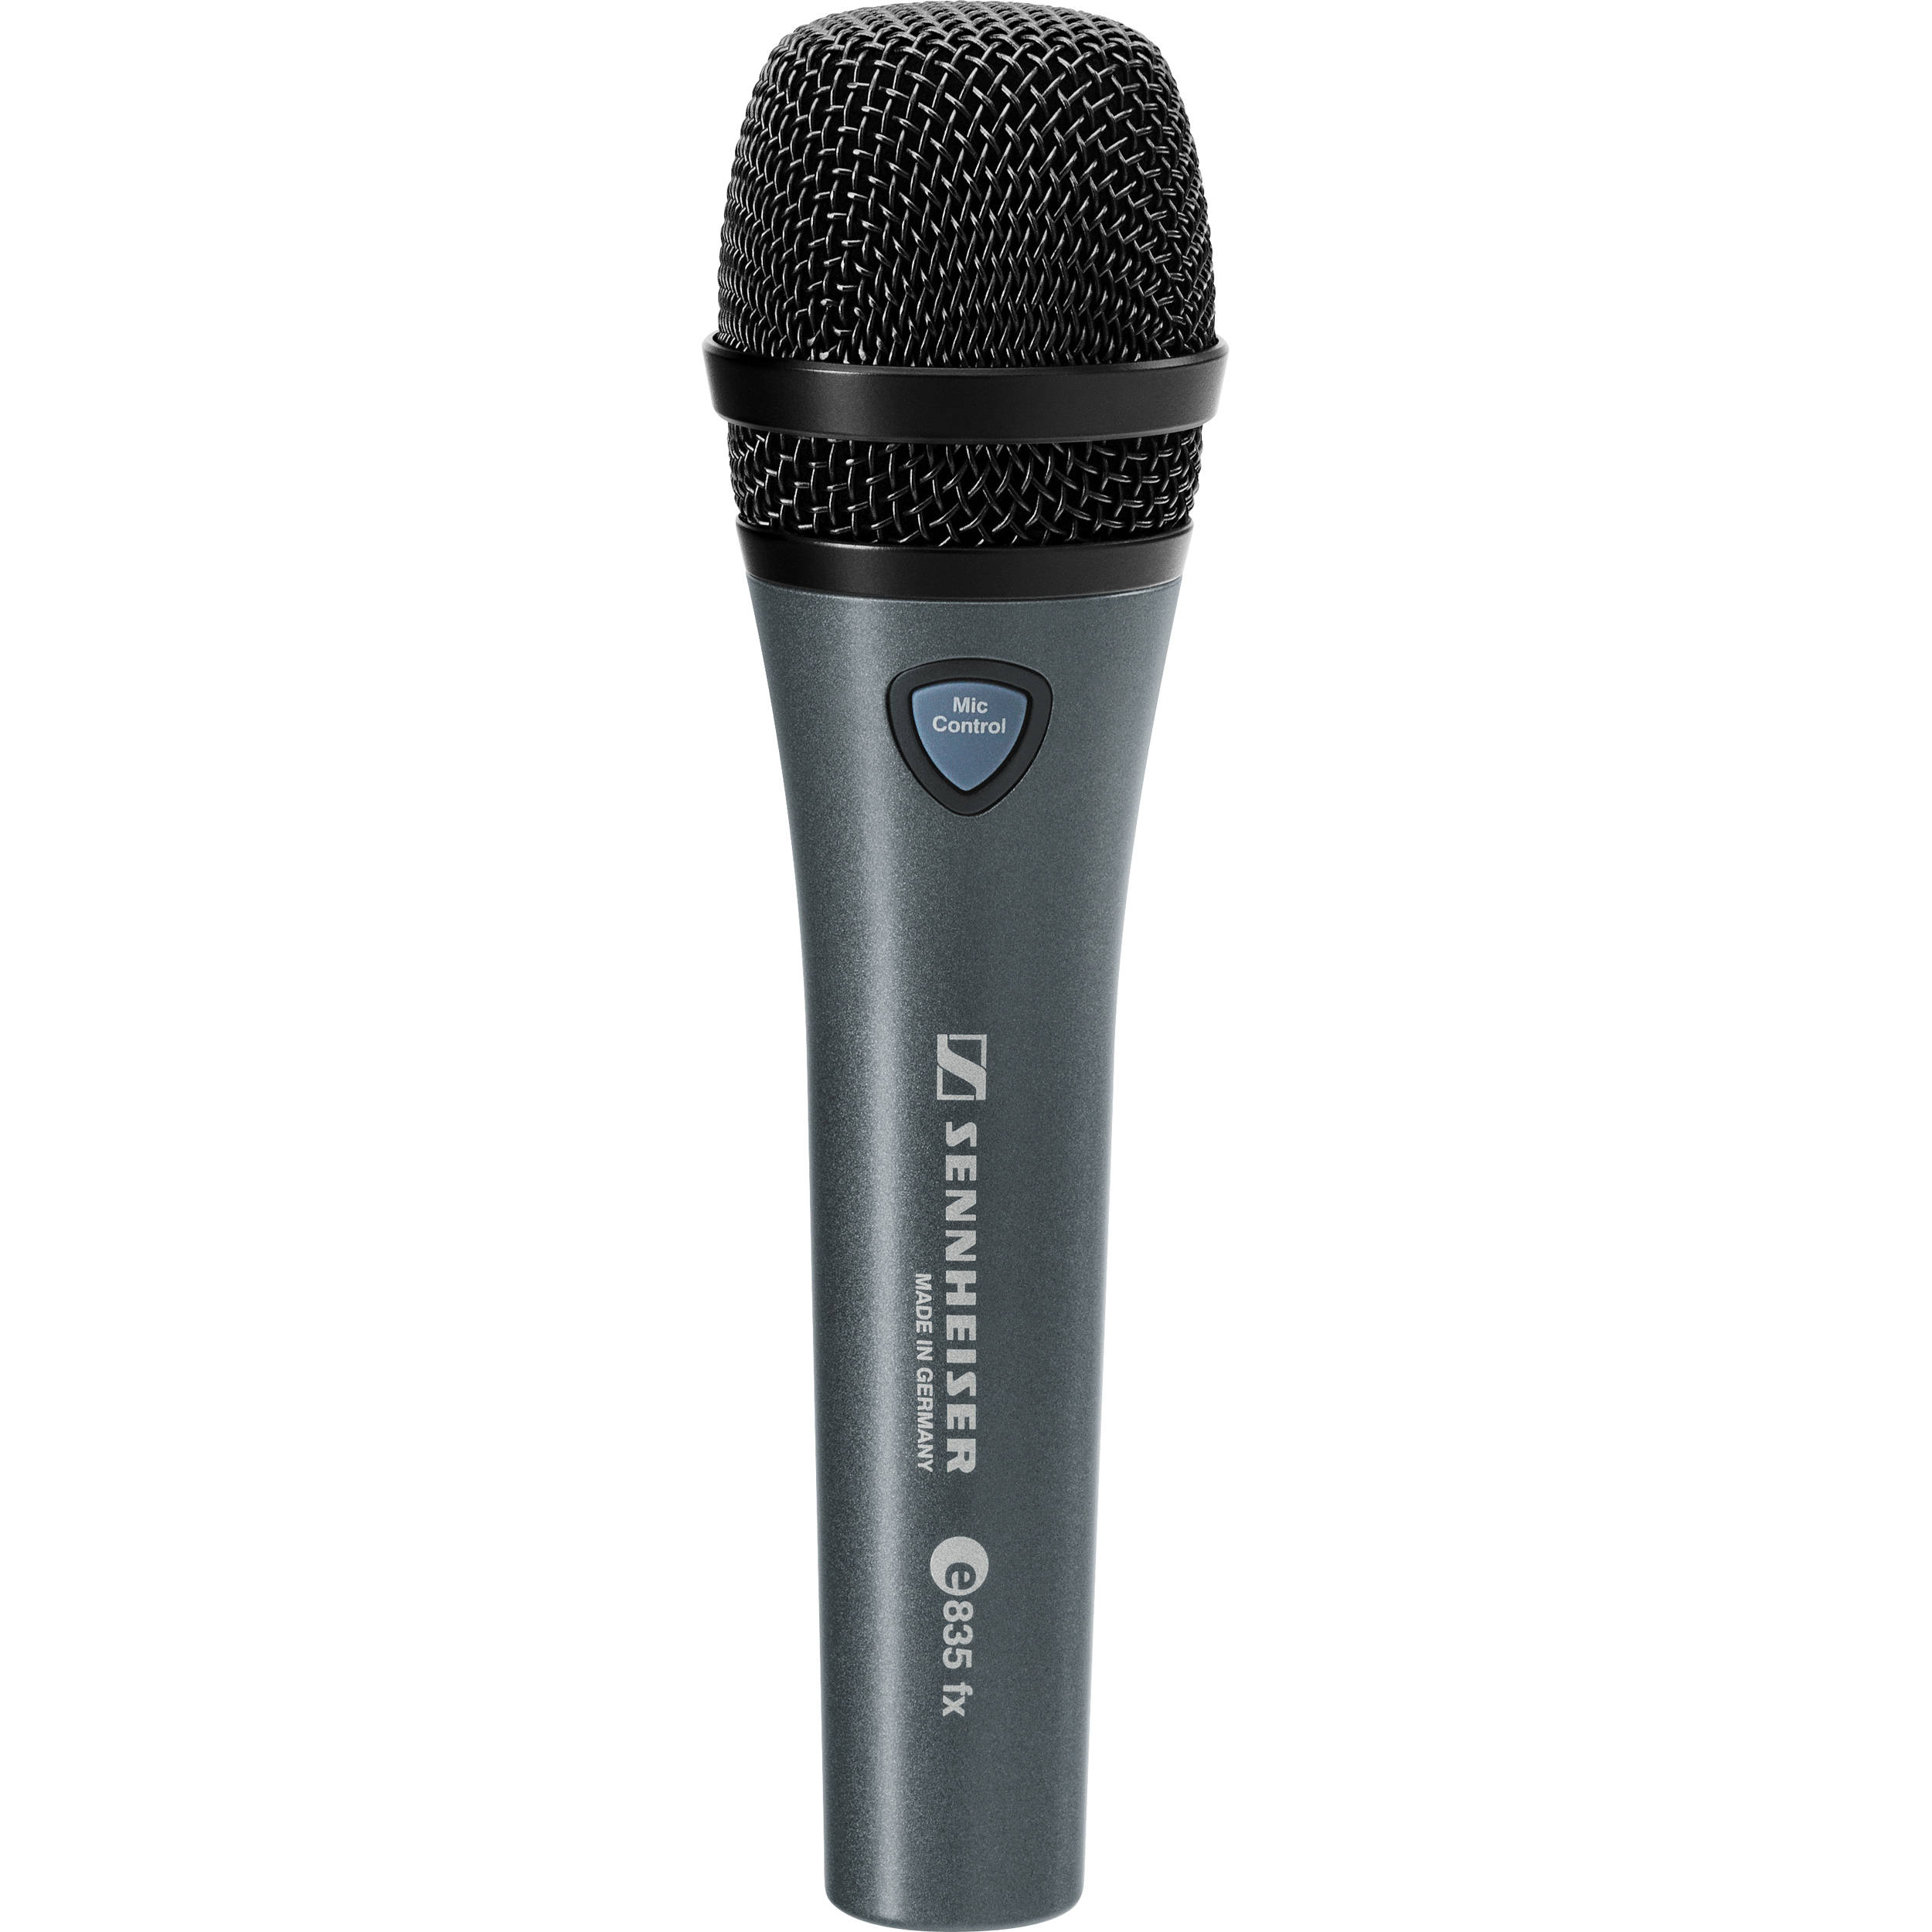 Sennheiser Vocal Microphone : sennheiser evolution e 835 fx dynamic vocal microphone e835fx ~ Russianpoet.info Haus und Dekorationen